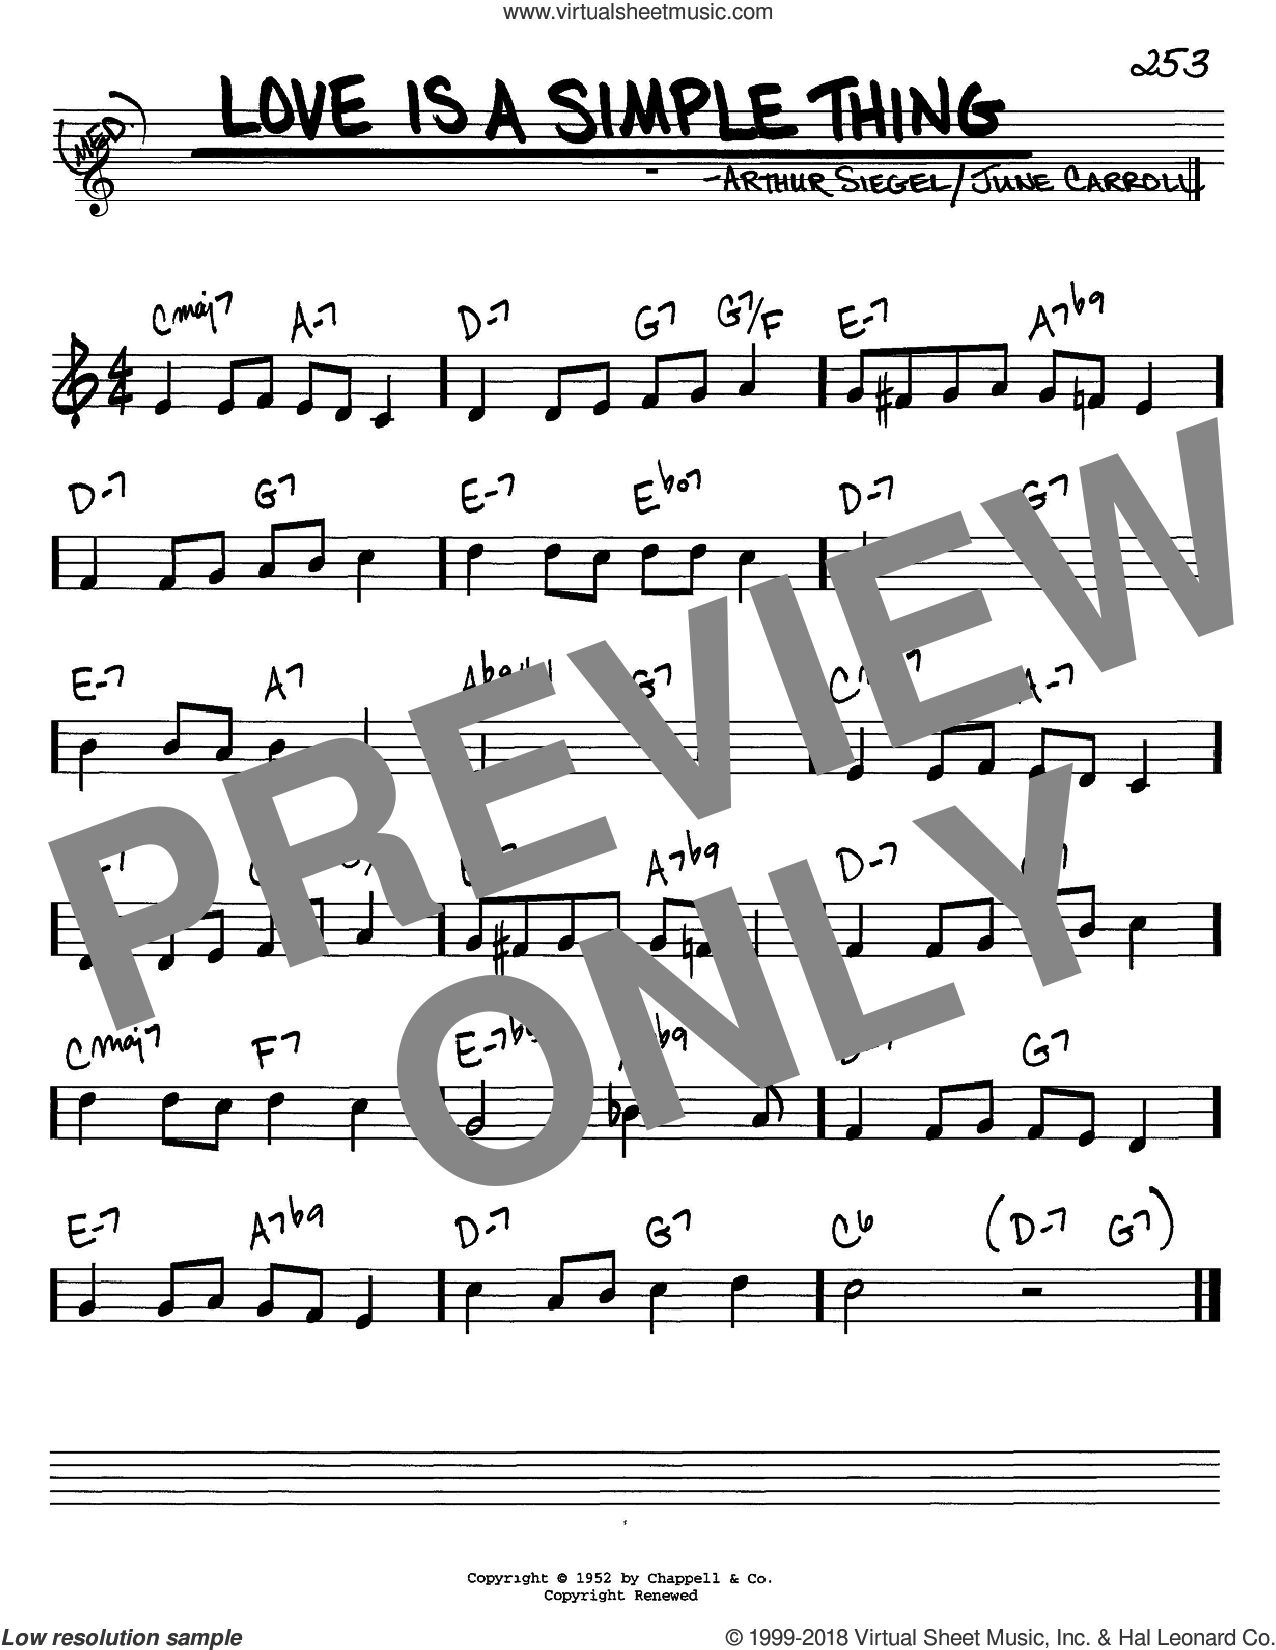 Love Is A Simple Thing sheet music for voice and other instruments (C) by Arthur Siegel and June Carroll